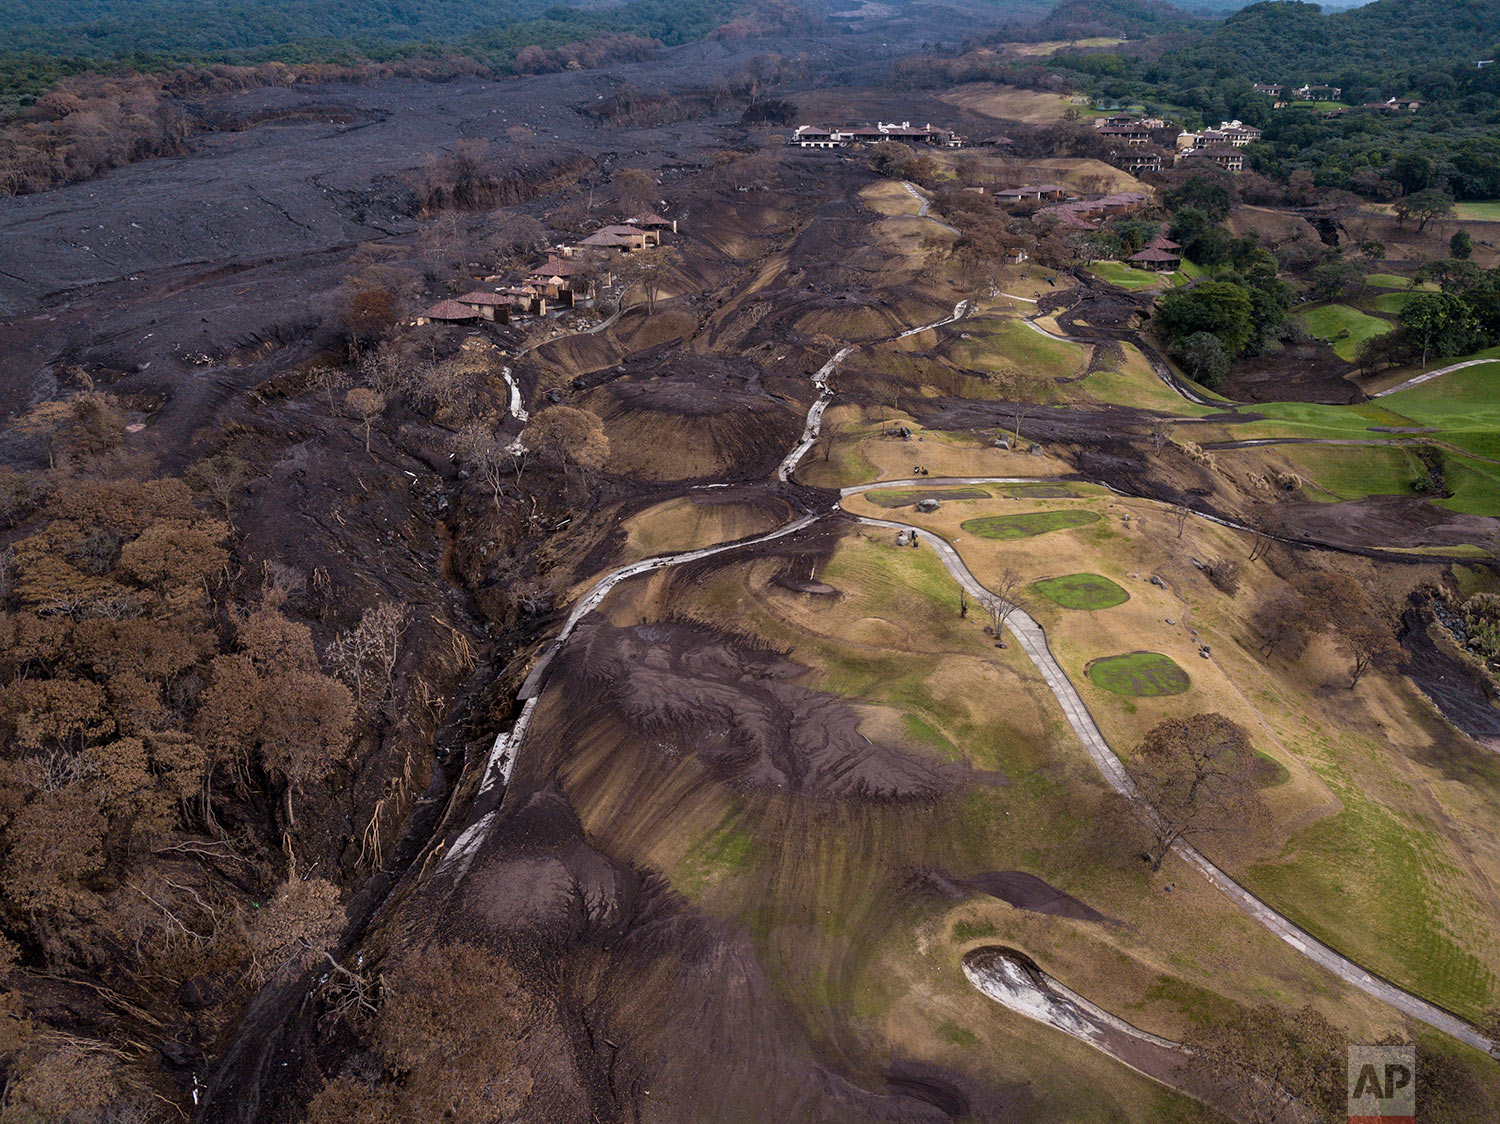 In this June 16, 2018 photo, volcanic debris covers parts of La Reunion Golf Resort & Residences after the eruption of the Volcano of Fire in San Miguel Los Lotes, Guatemala. (AP Photo/Rodrigo Abd)